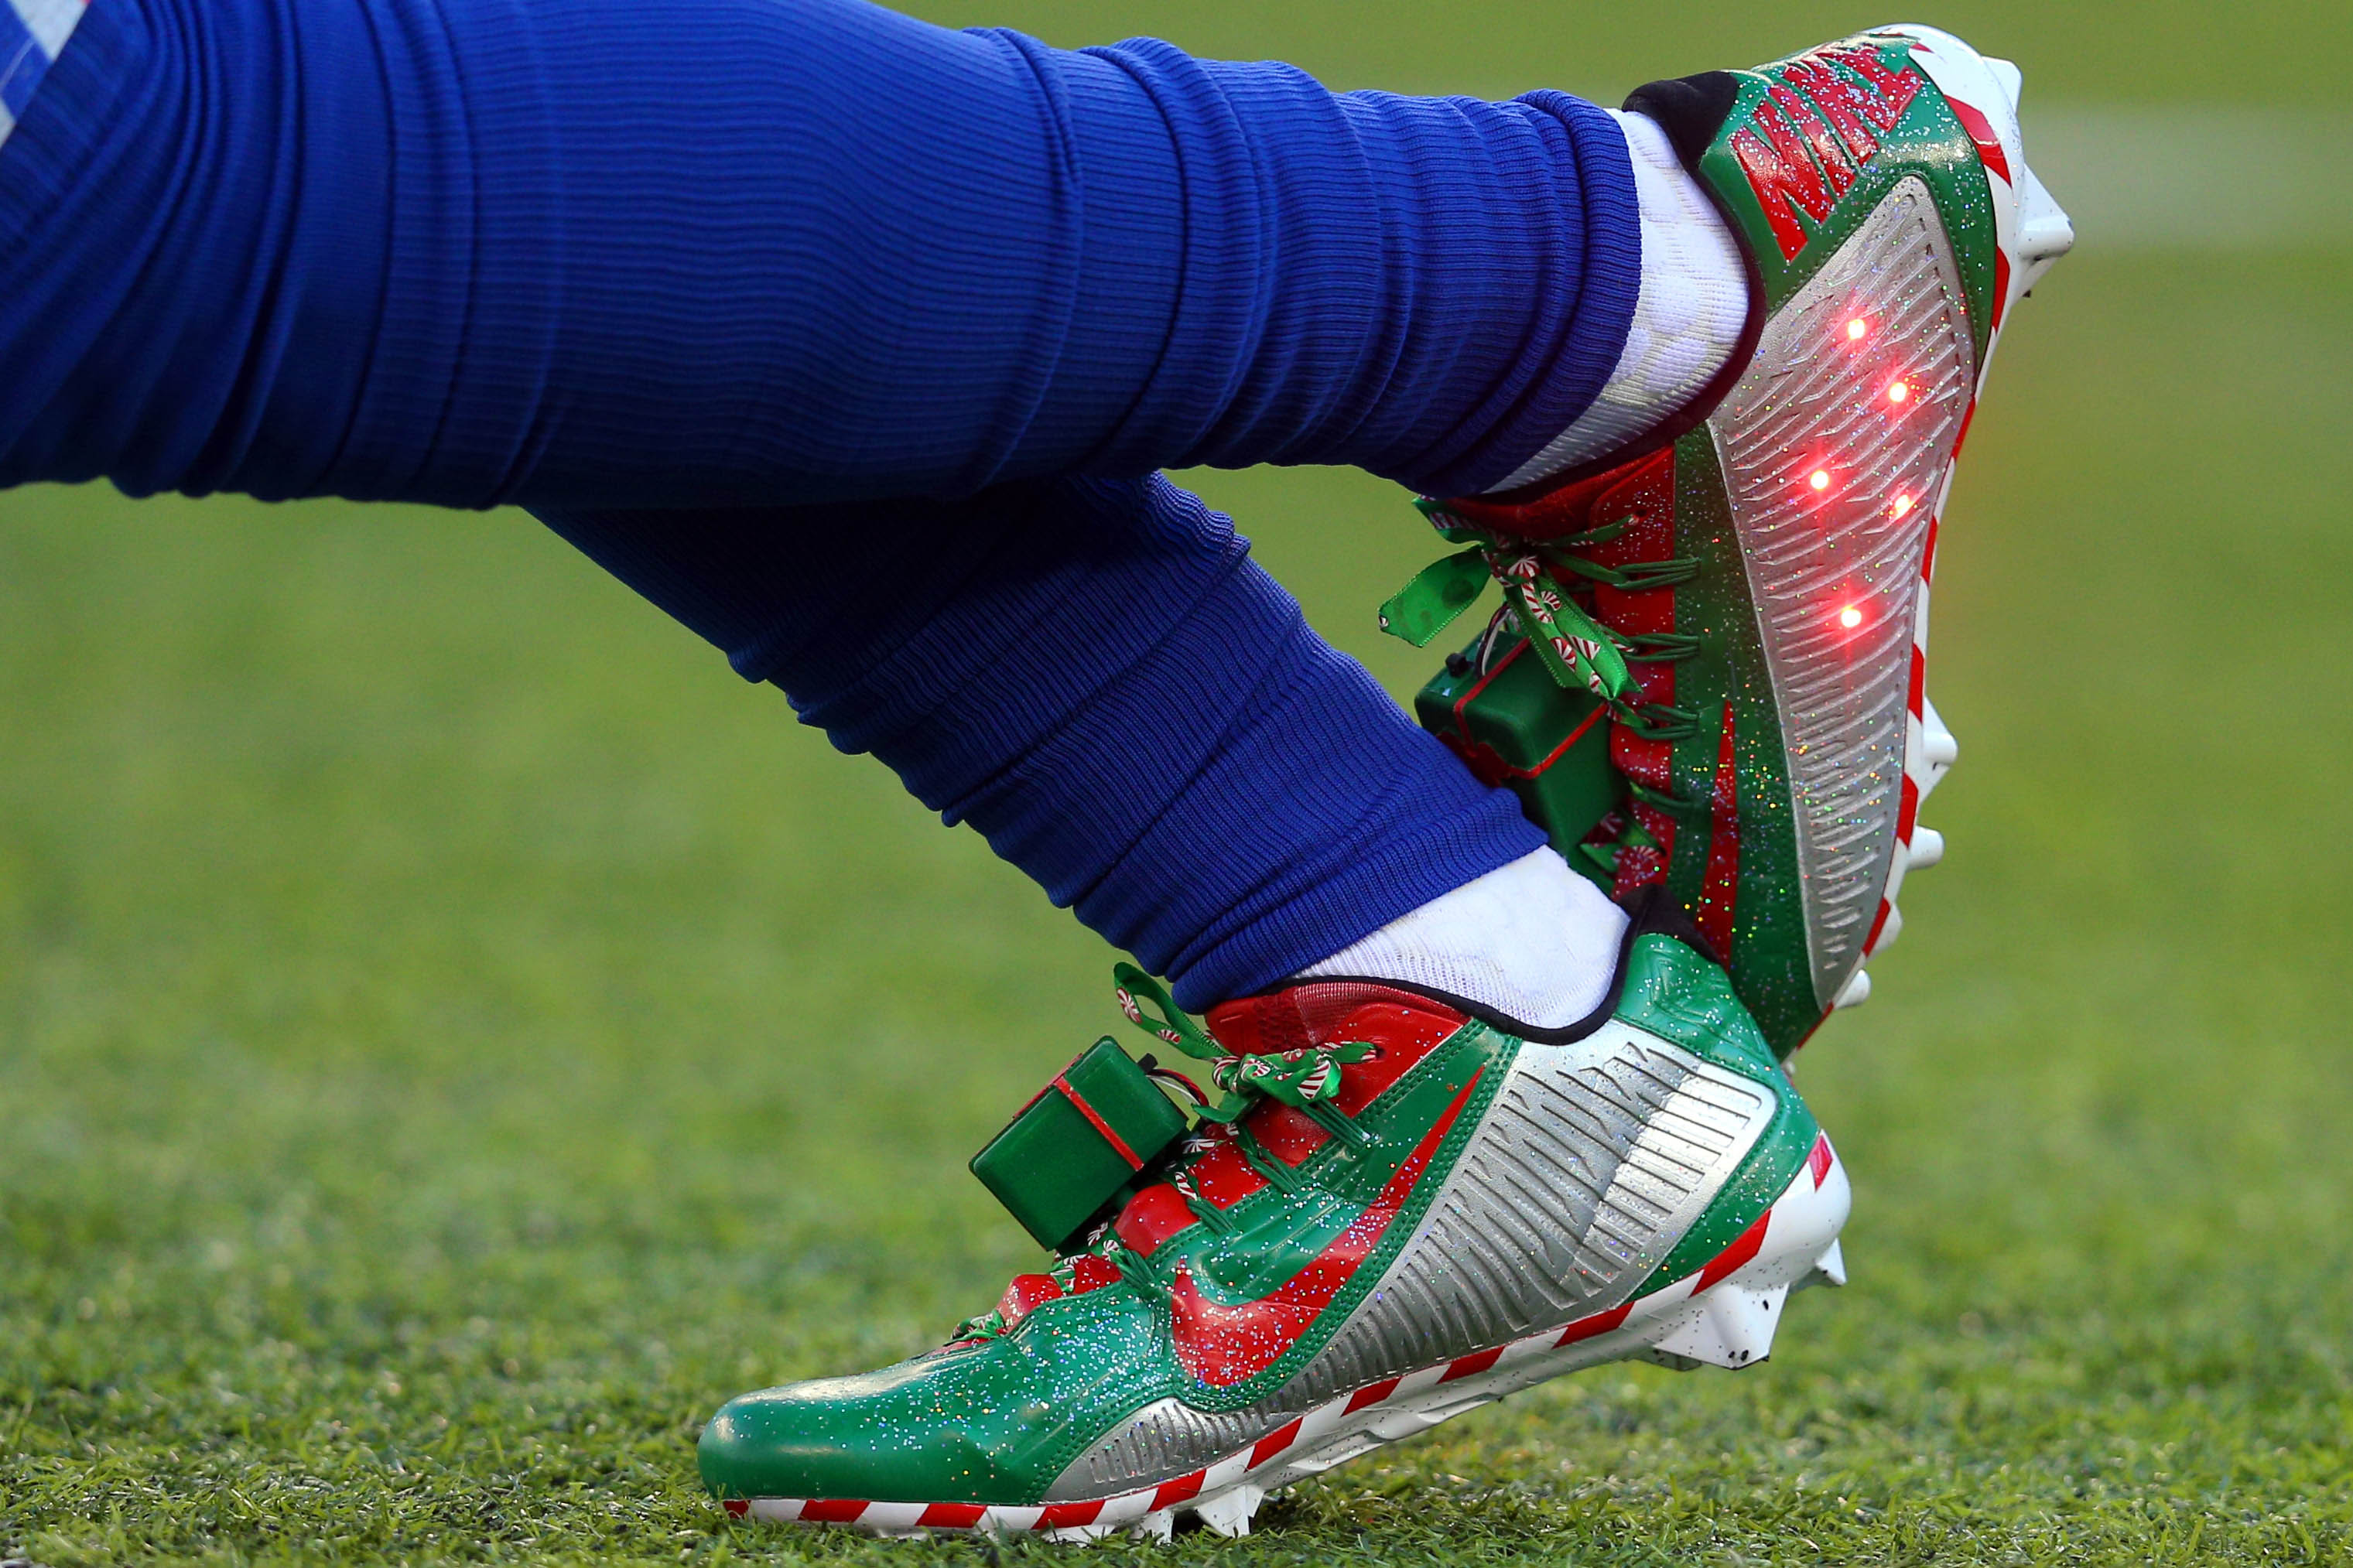 Odell Beckham warms up with light-up Christmas cleats on